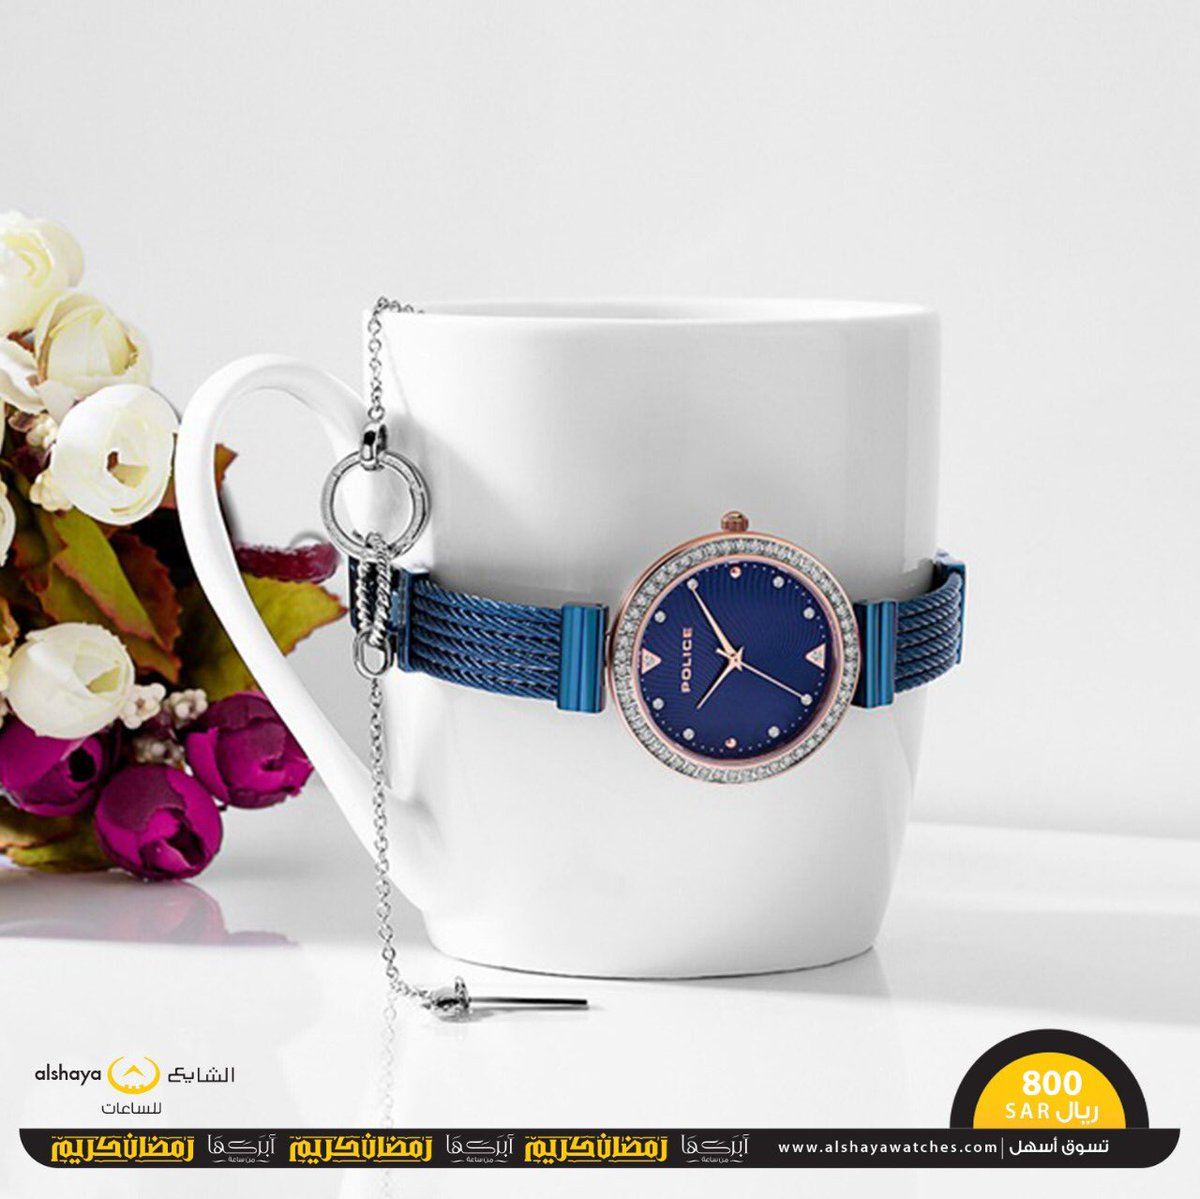 56629fb8ee86e الشايع للساعات ( AlshayaWatches)